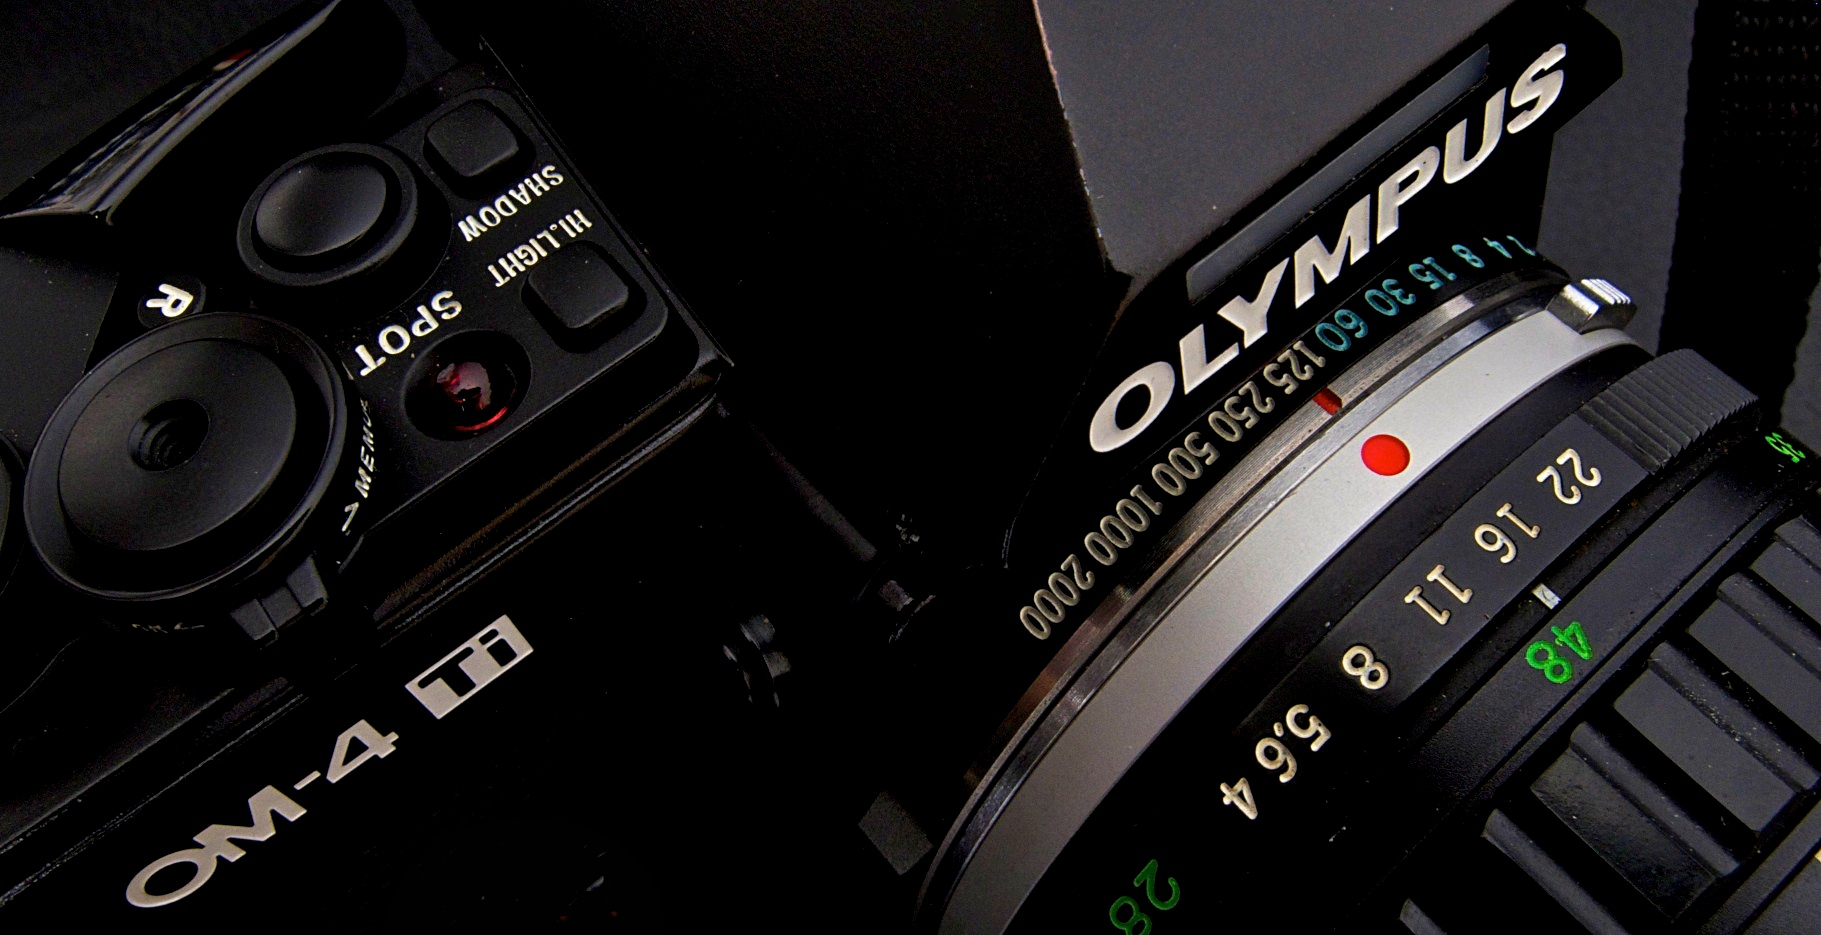 OM-4 Ti - same shape, so many innovations - one of the best ever!